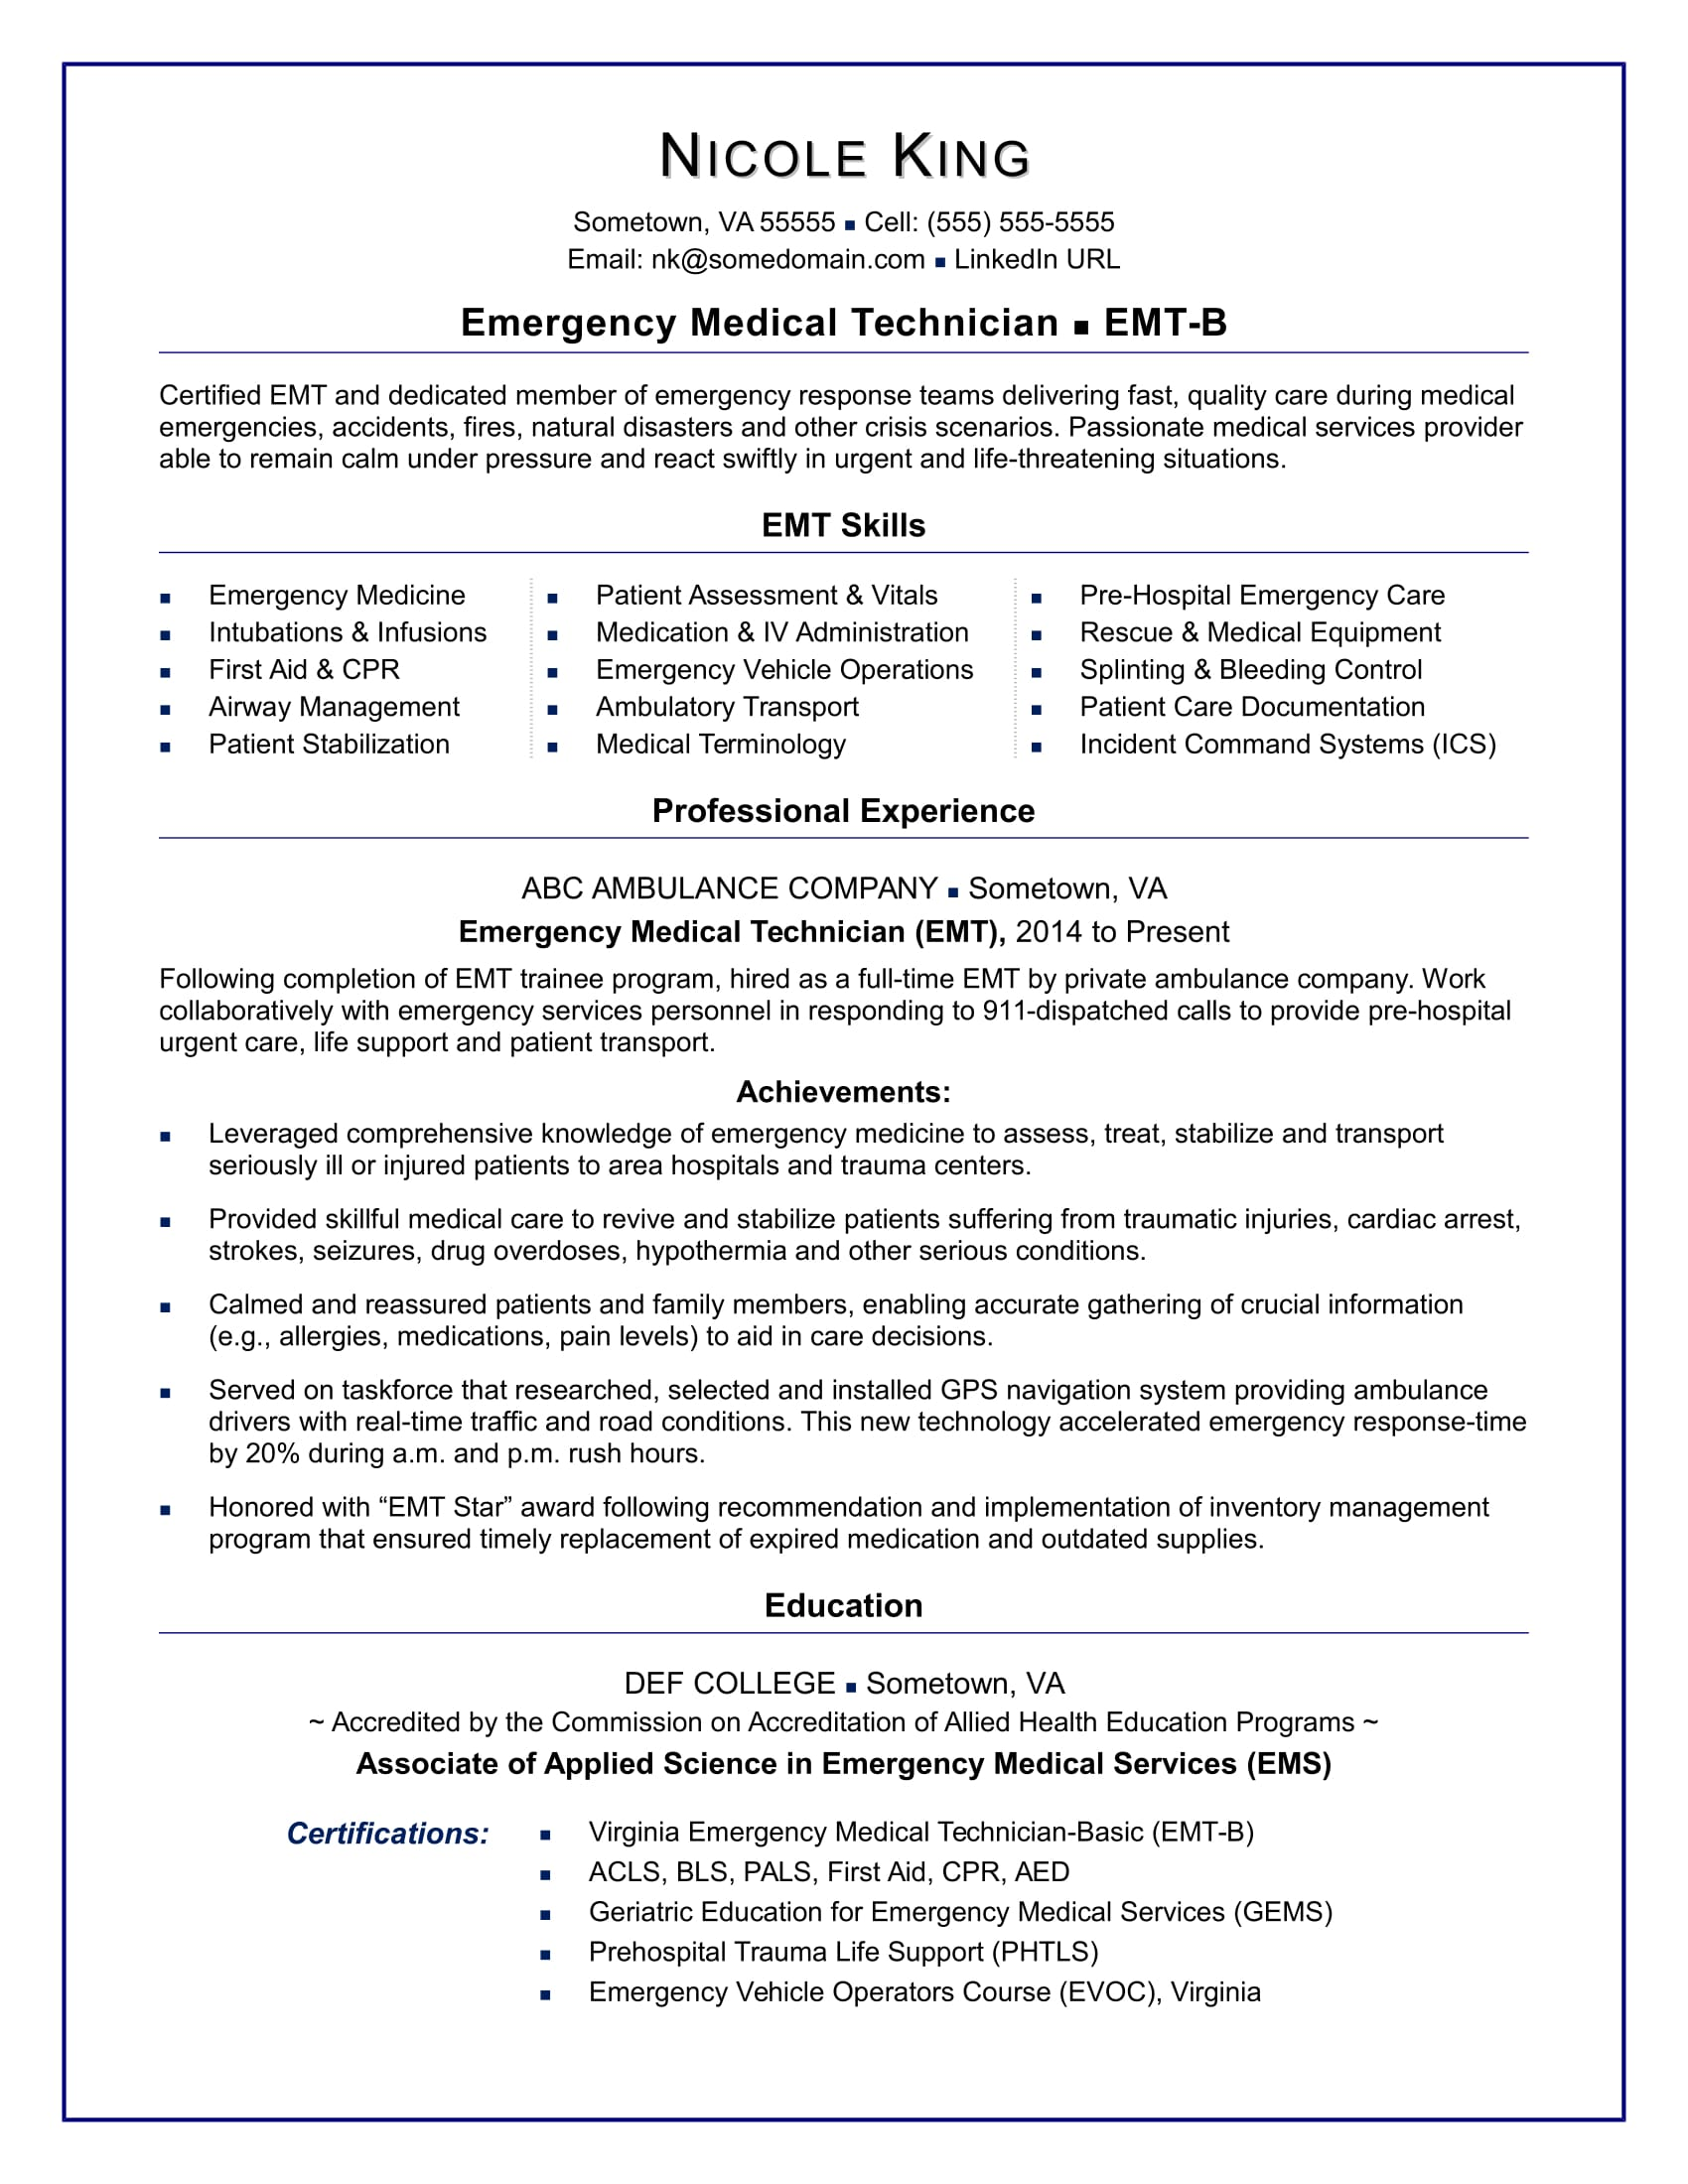 emt resume sample monster free templates investment banking tips fau help copy editor for Resume Free Emt Resume Templates